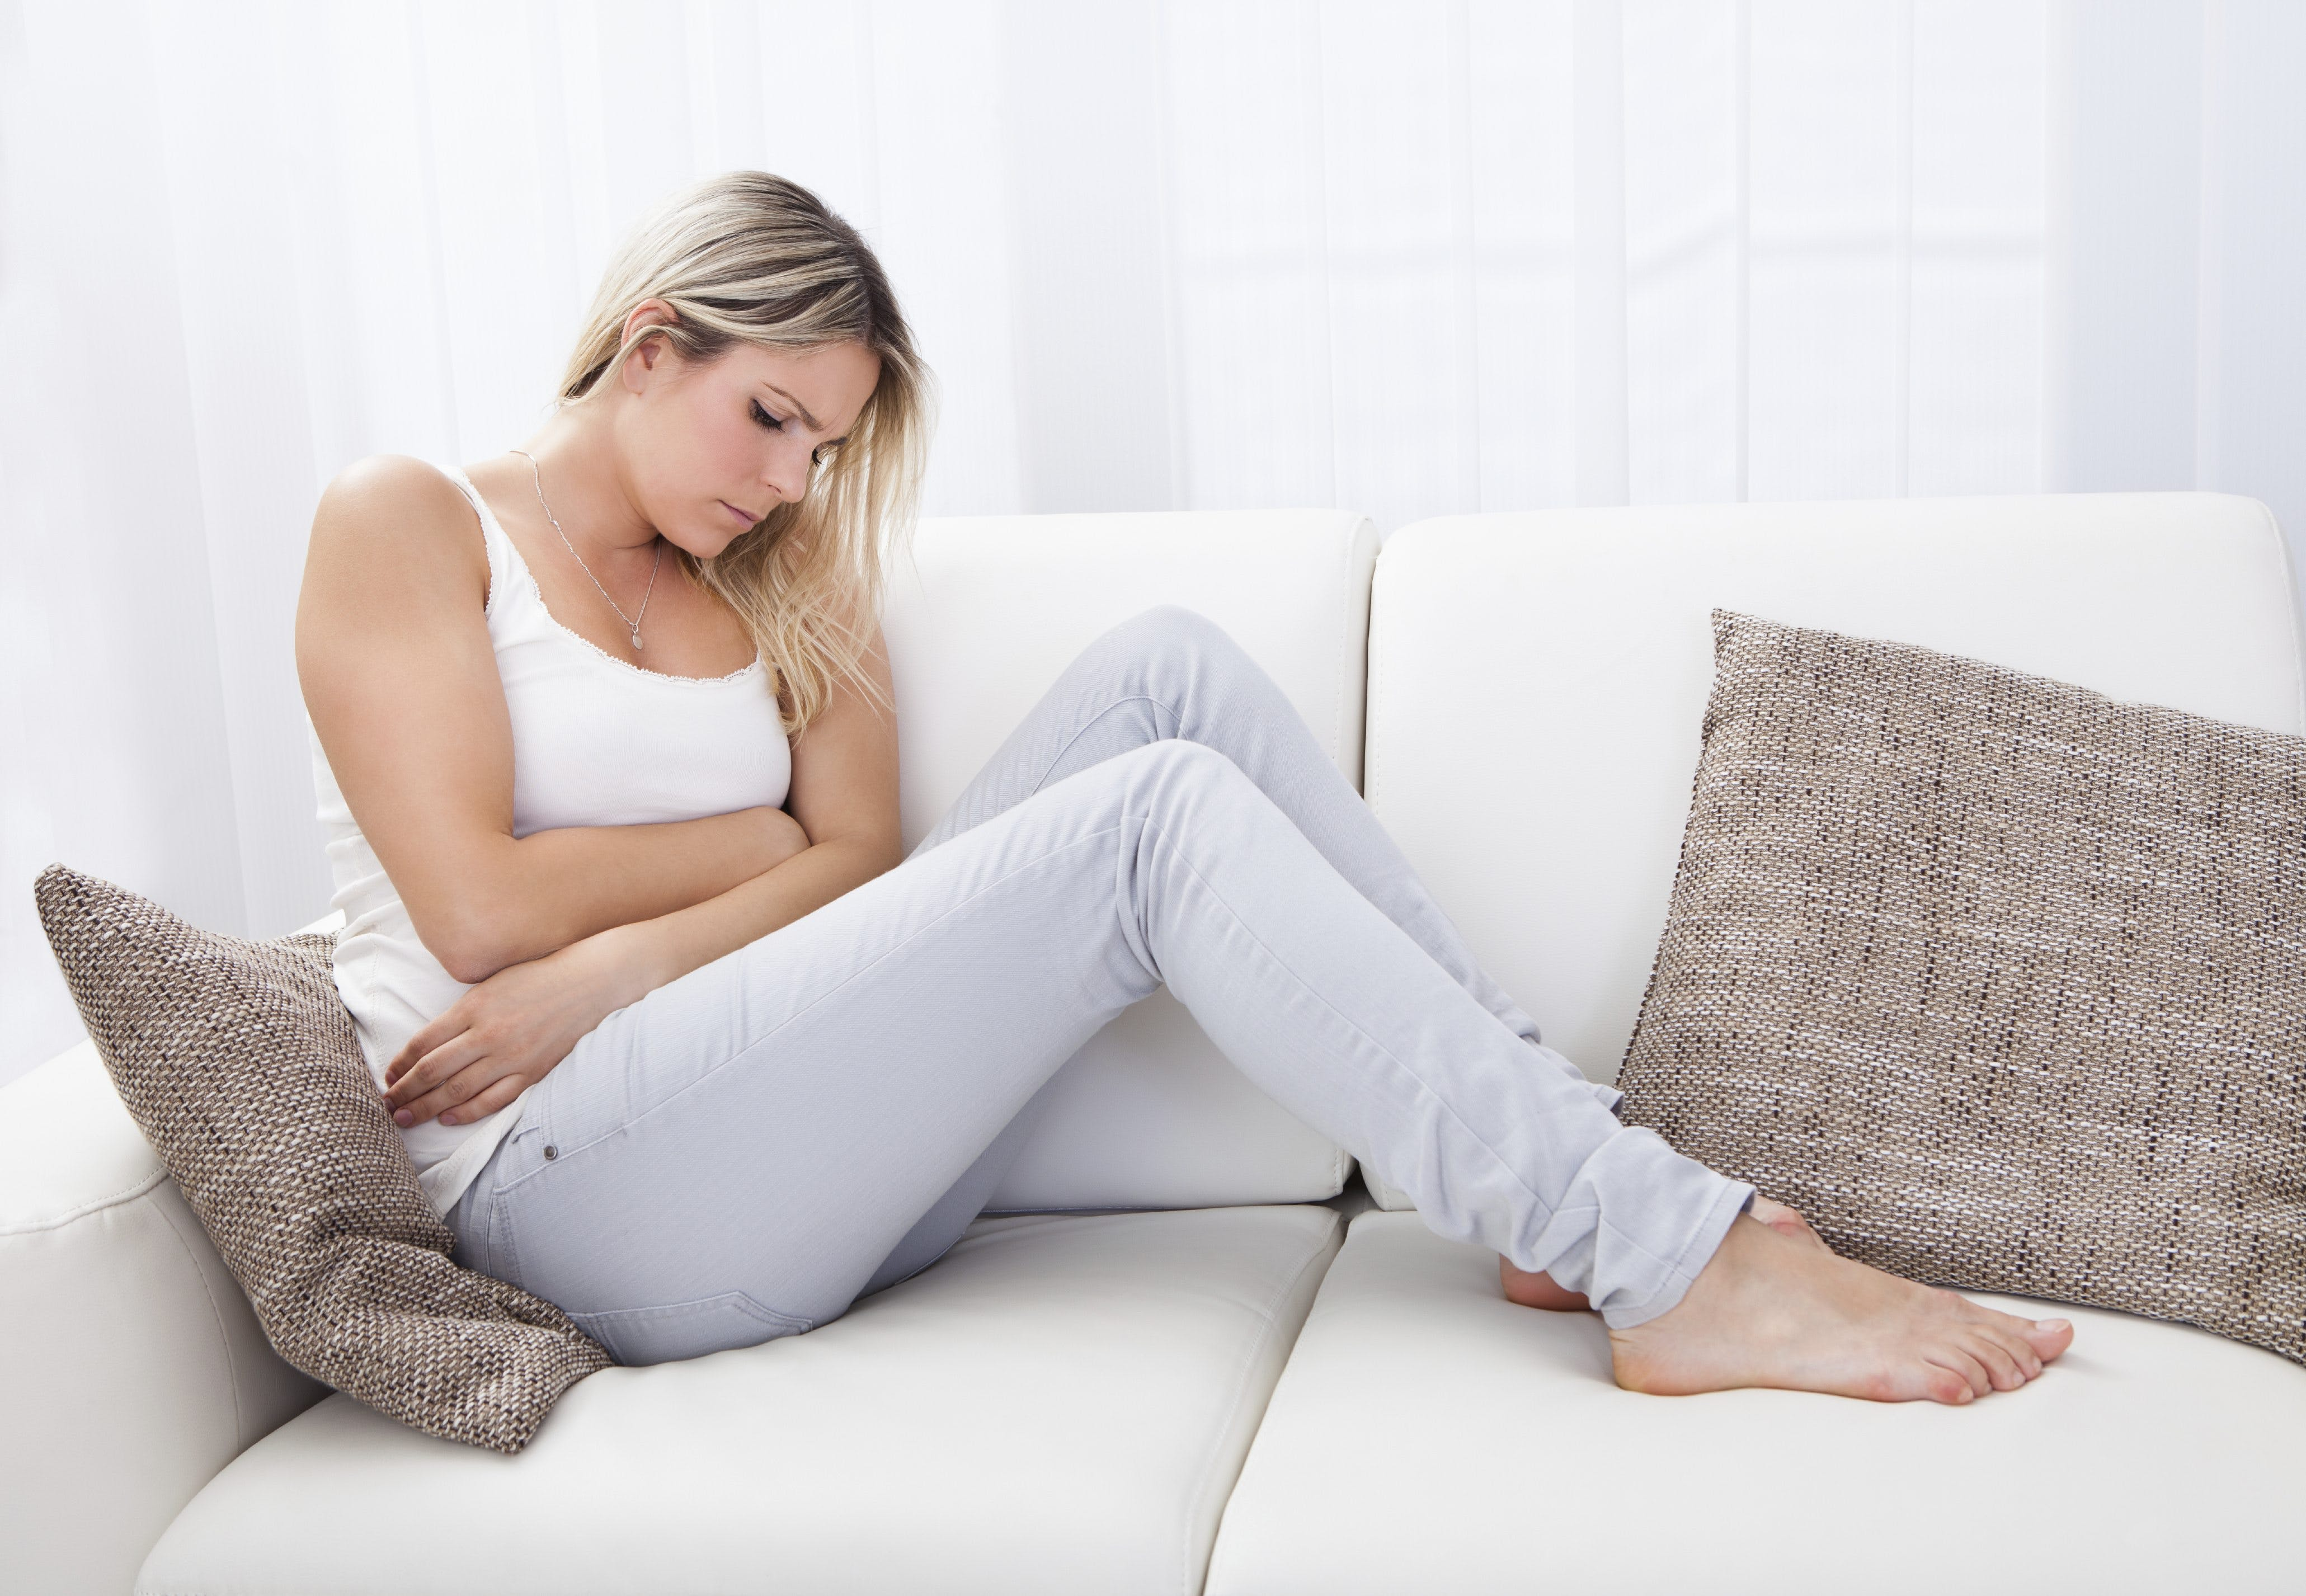 What Causes Stomach Problems – Gluten or Carbs?